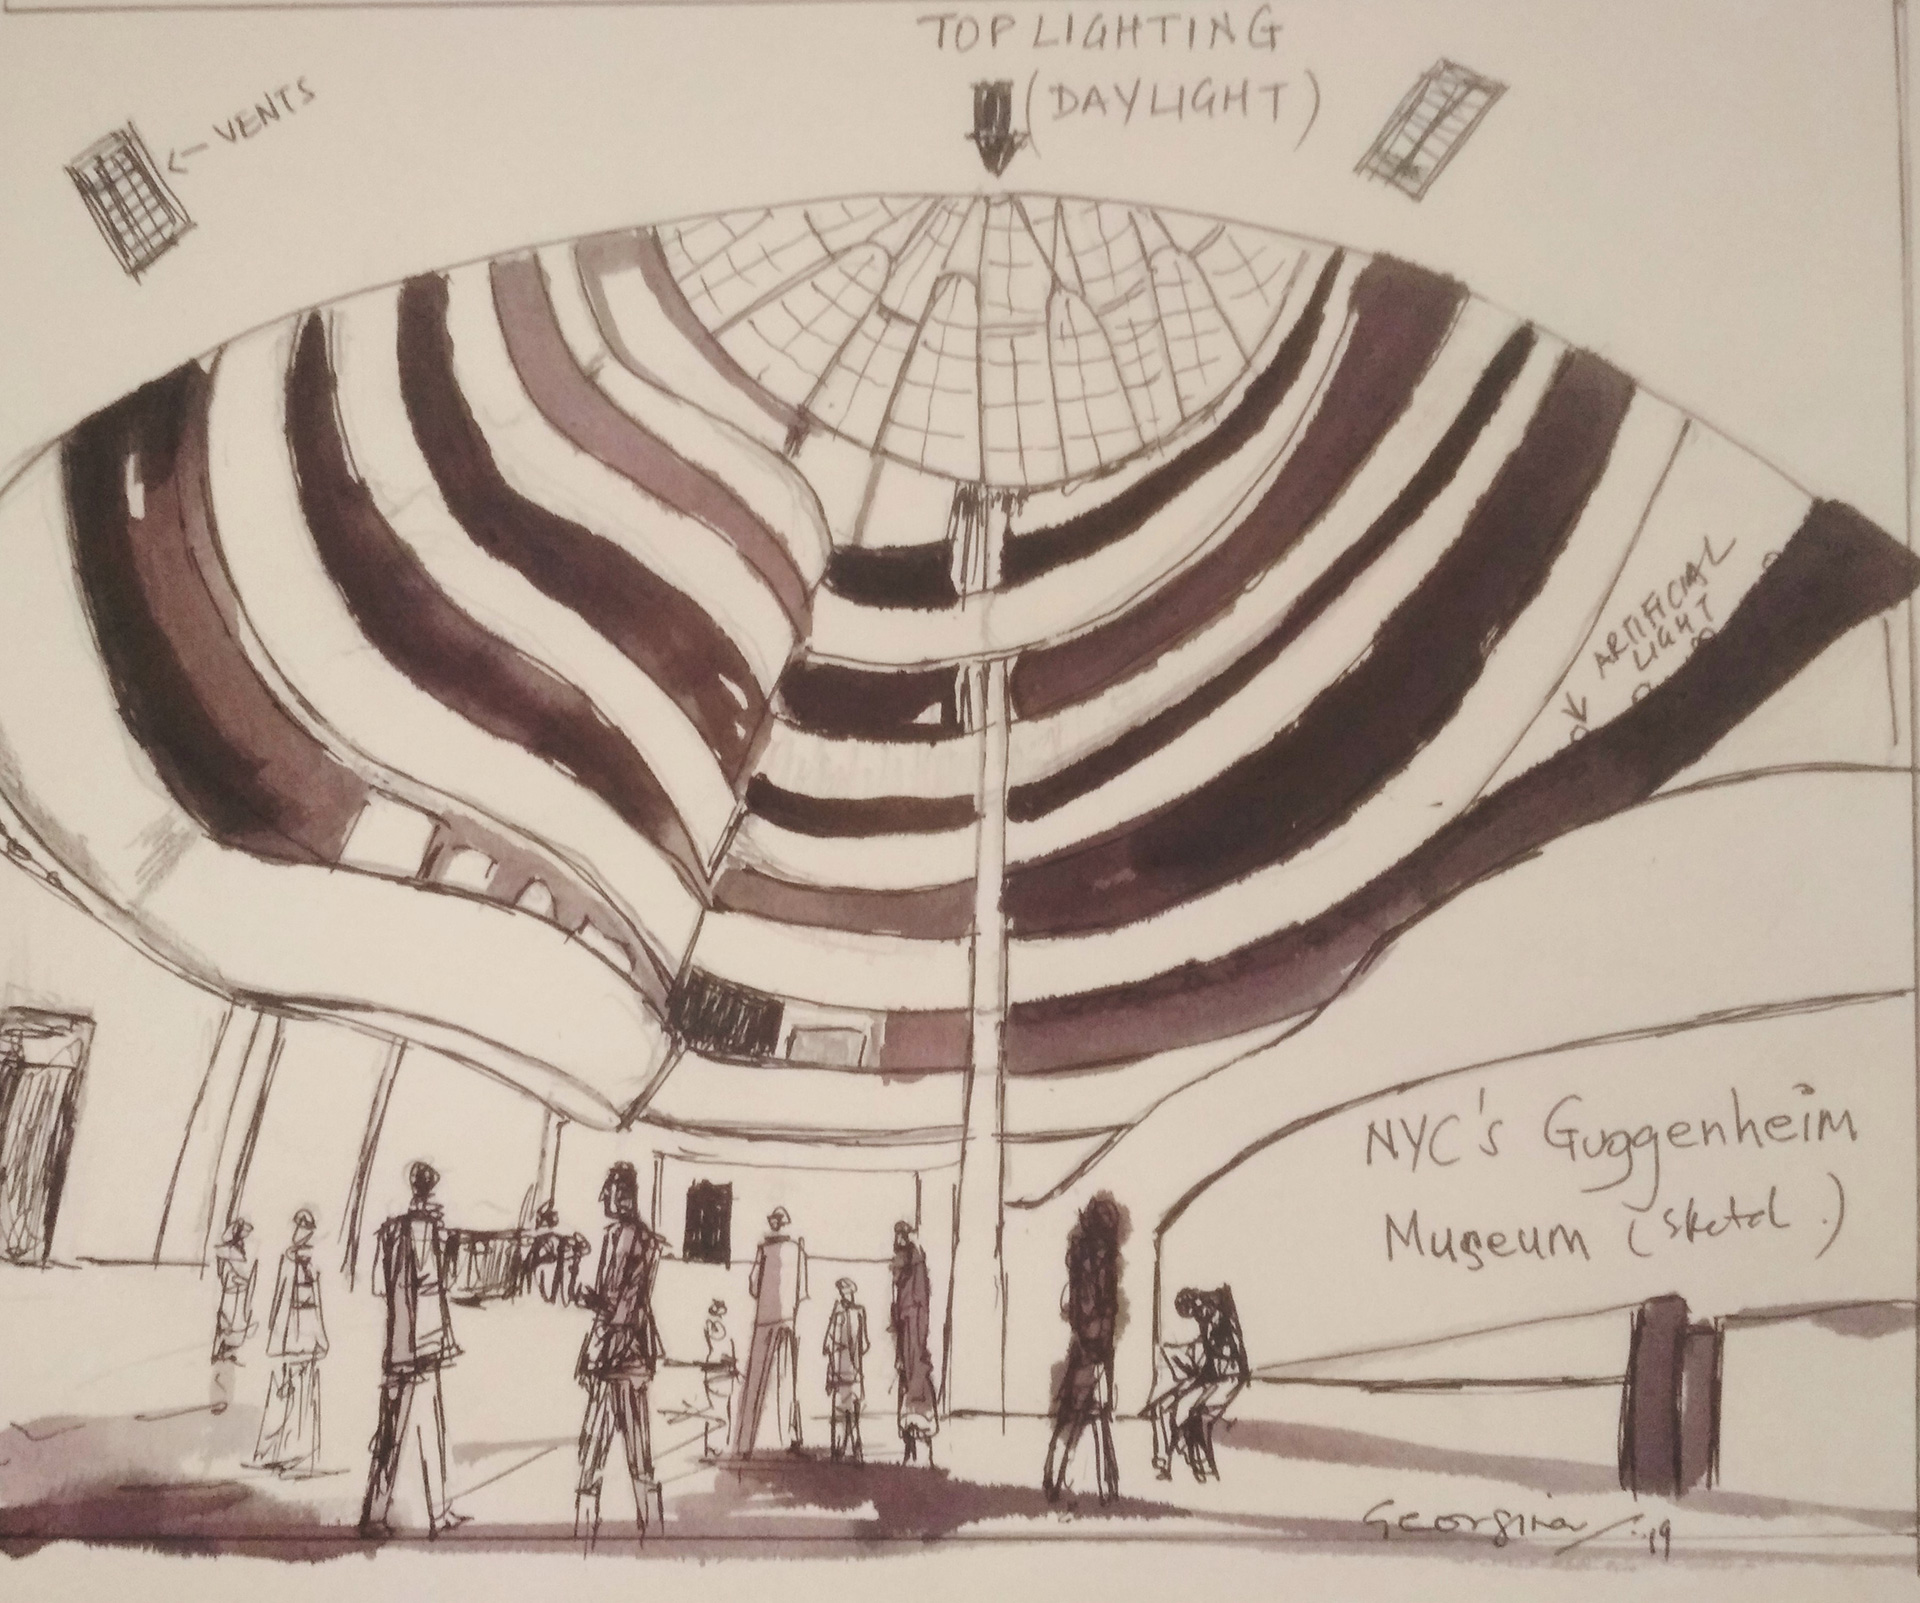 A sketch of the Guggenheim Museum to observe the effective use of day lighting from the top/skylight | Daylight in galleries and museums | Guggenheim Museum | STIRworld